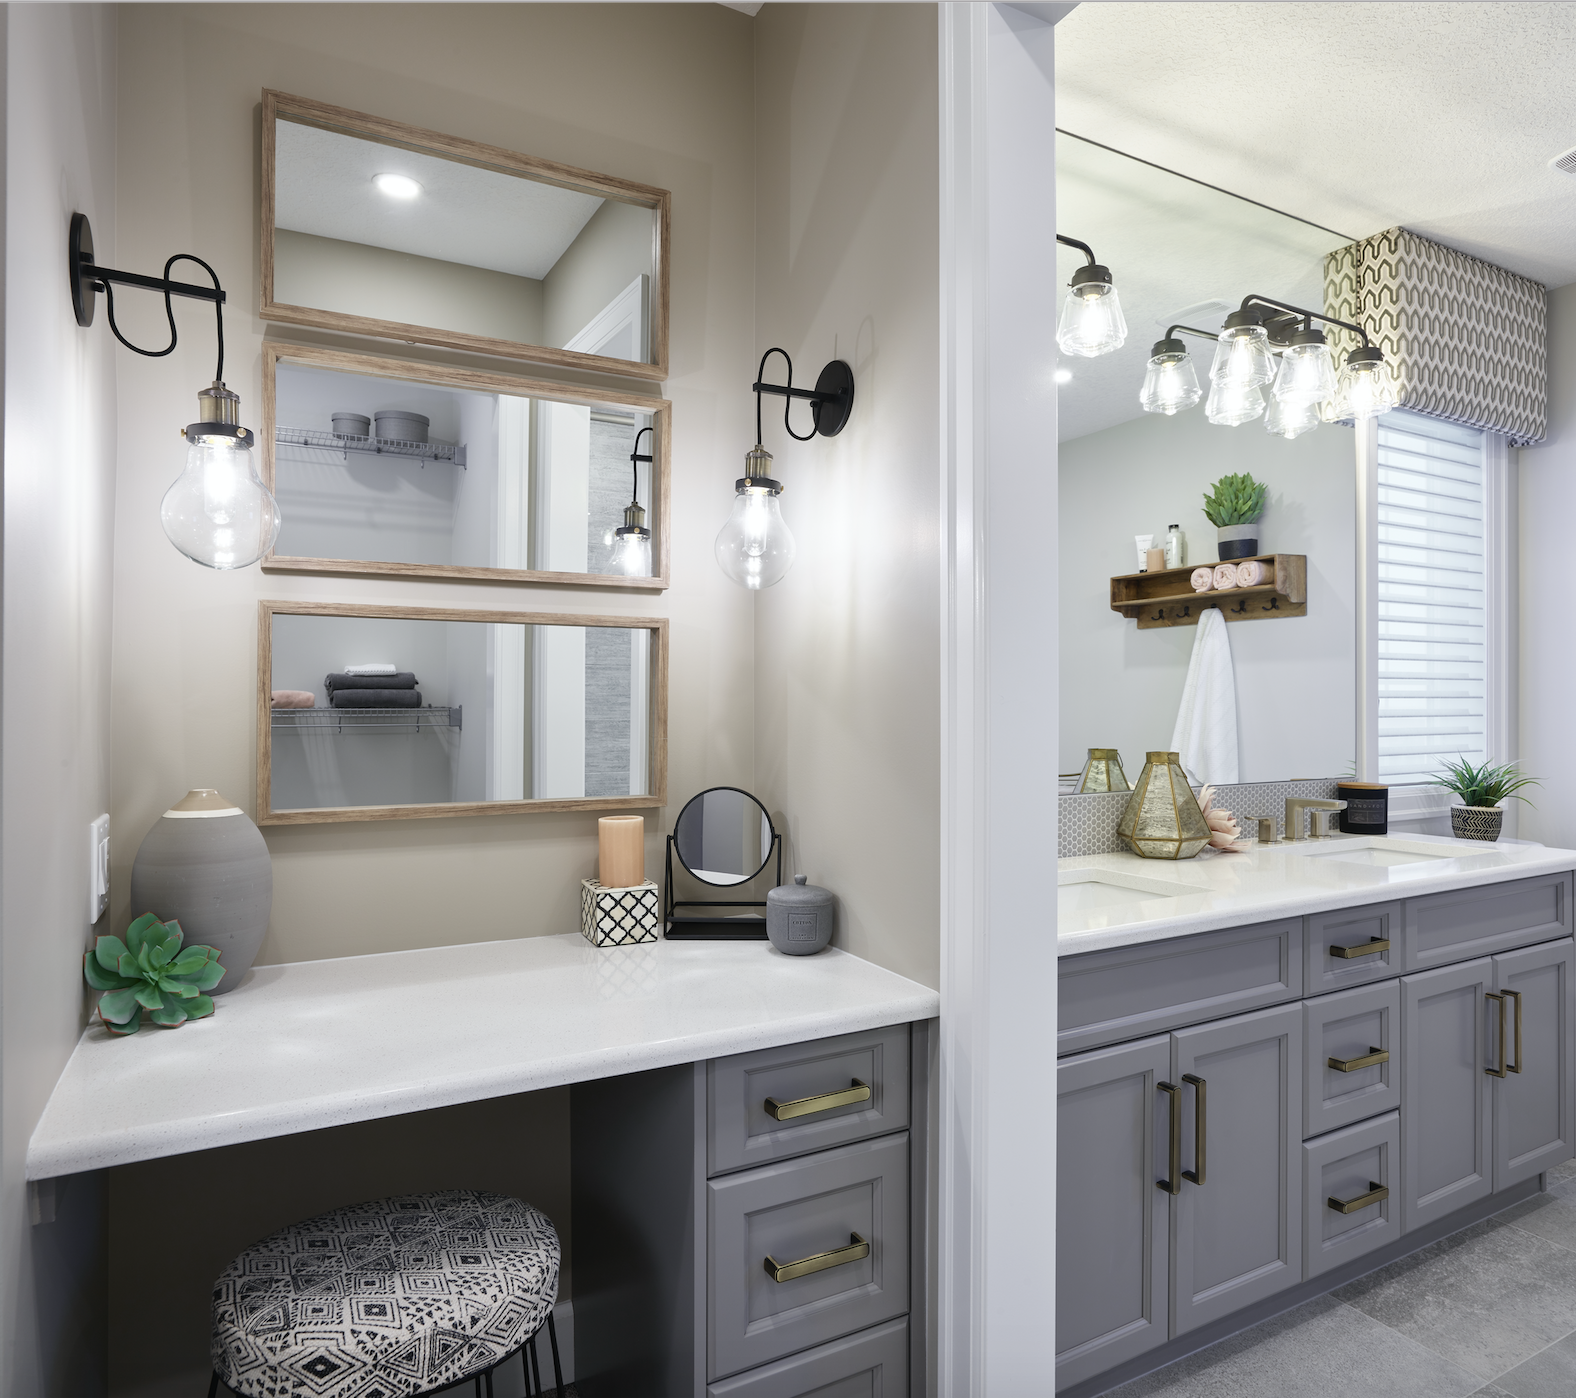 Design your bathroom with a separate vanity area for